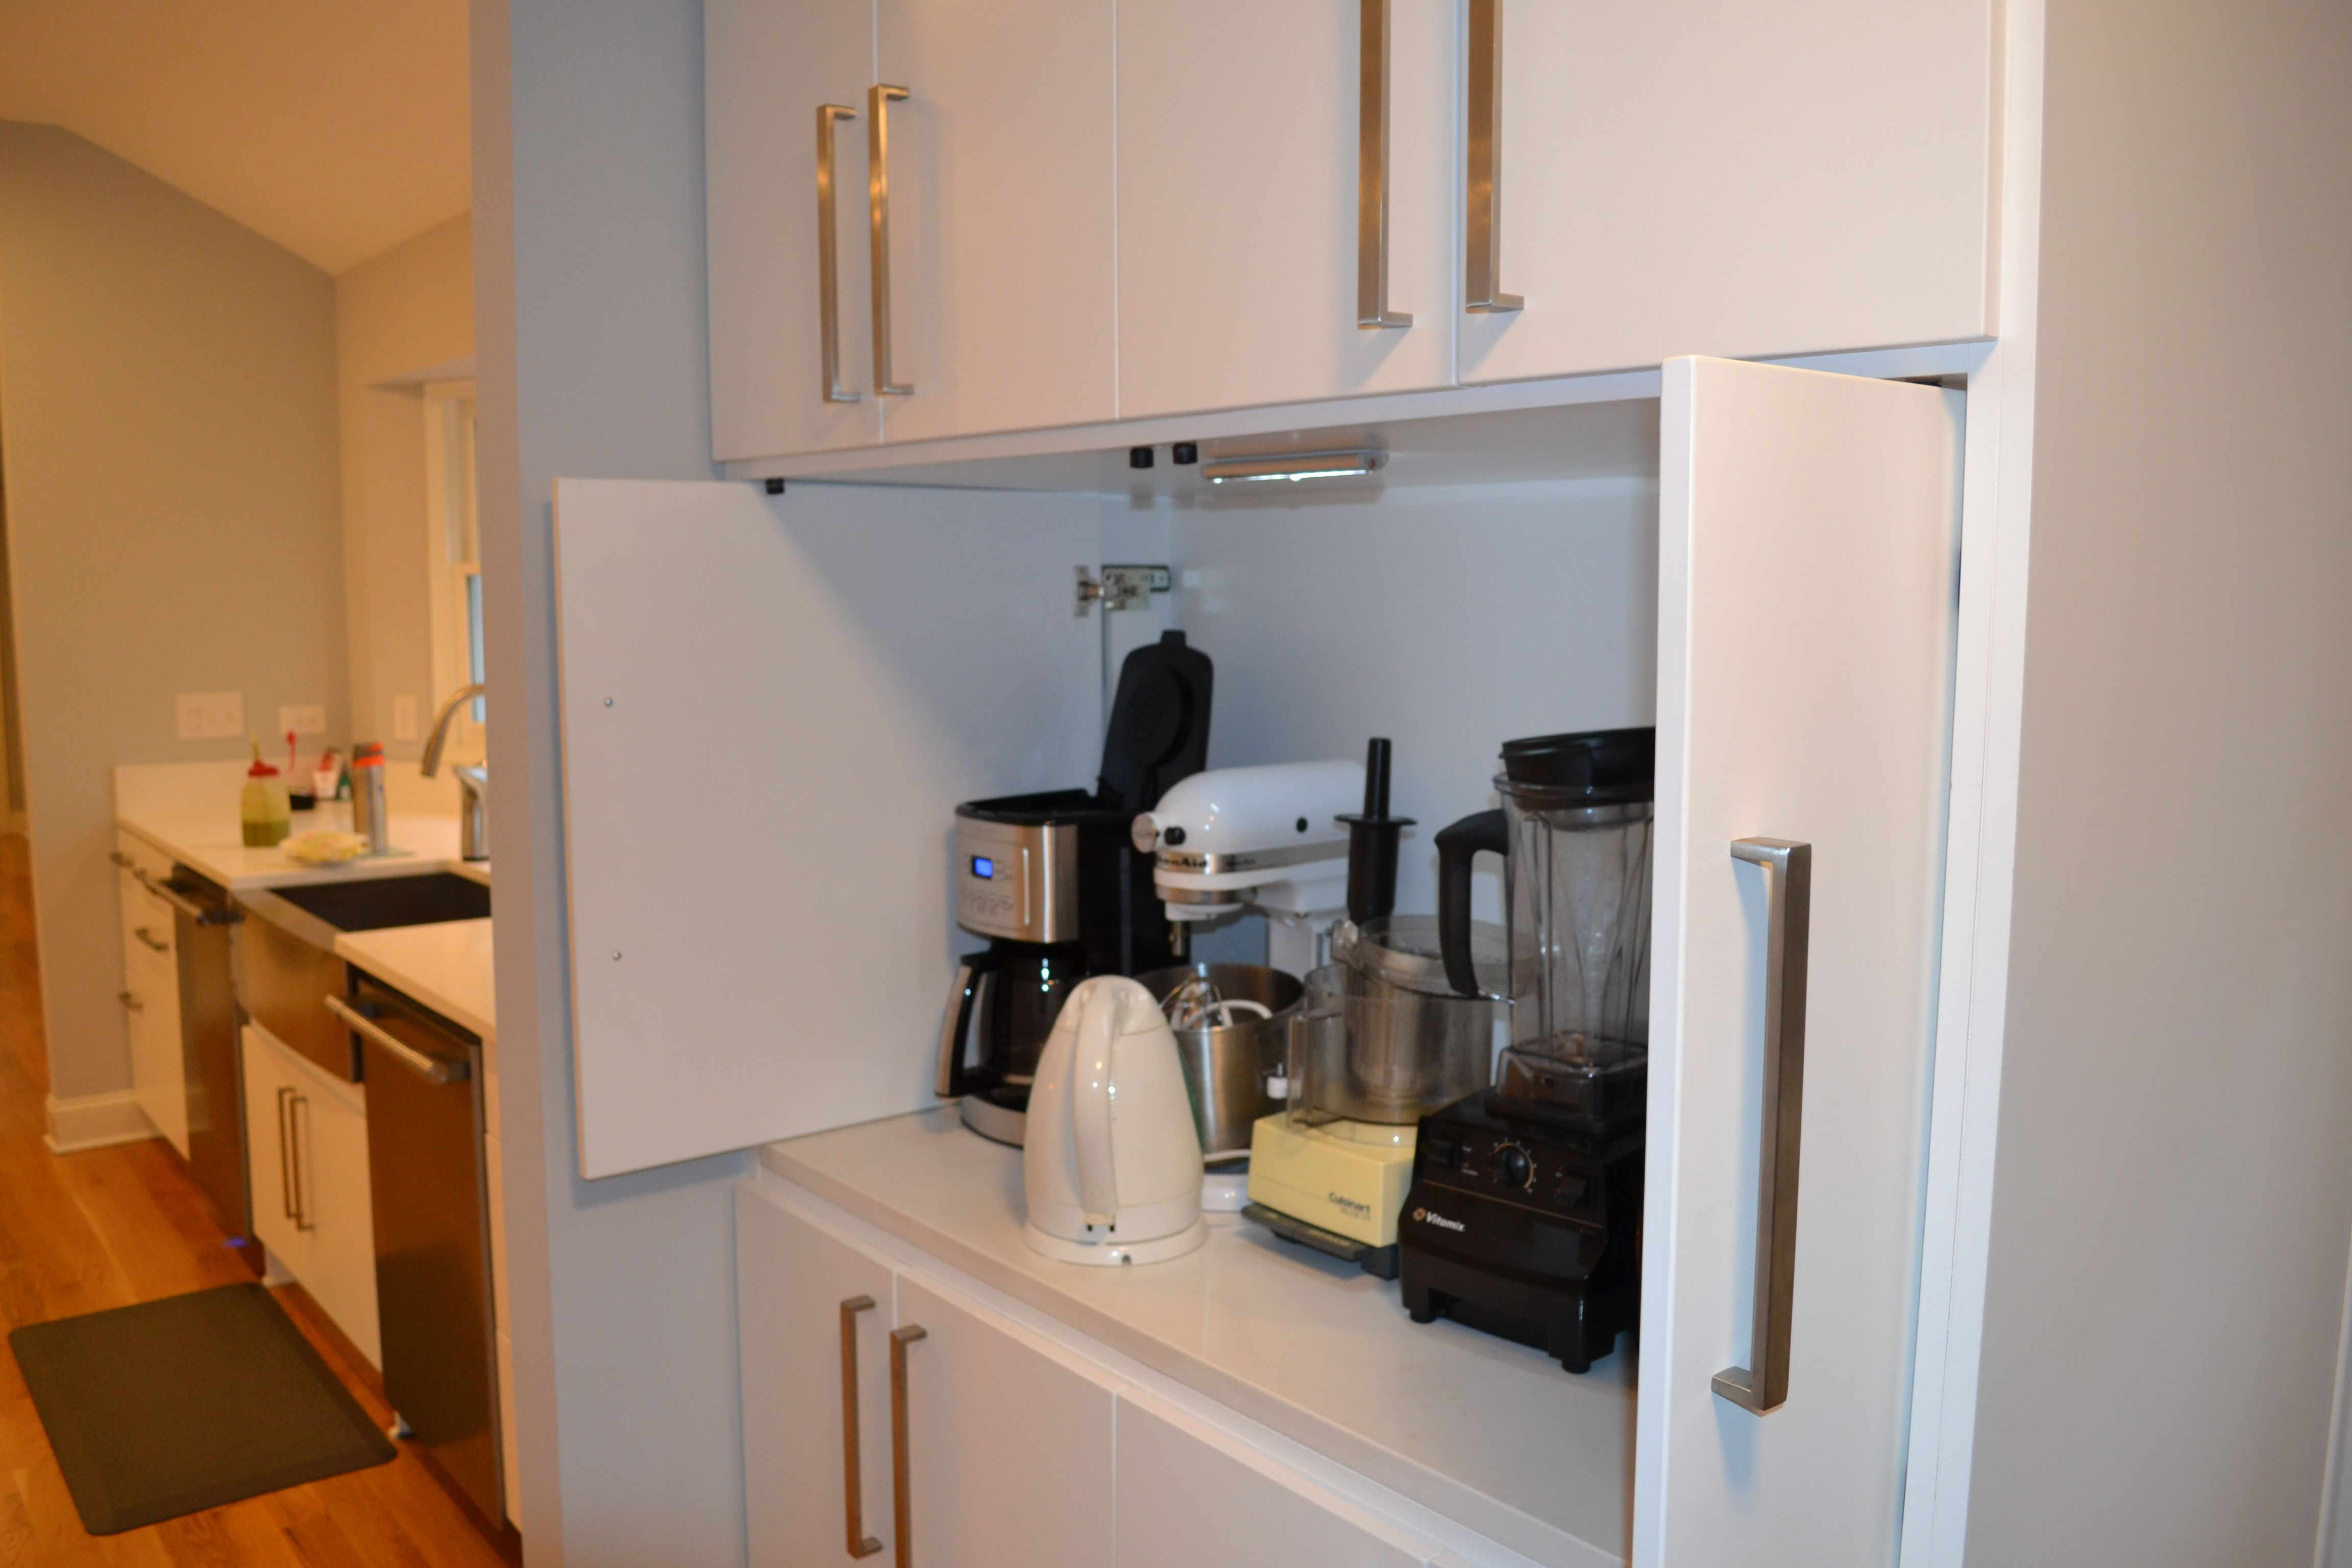 Kitchen Pantry Open, All Appliances Are Plugged In And Stay On The Quartz  Countertop